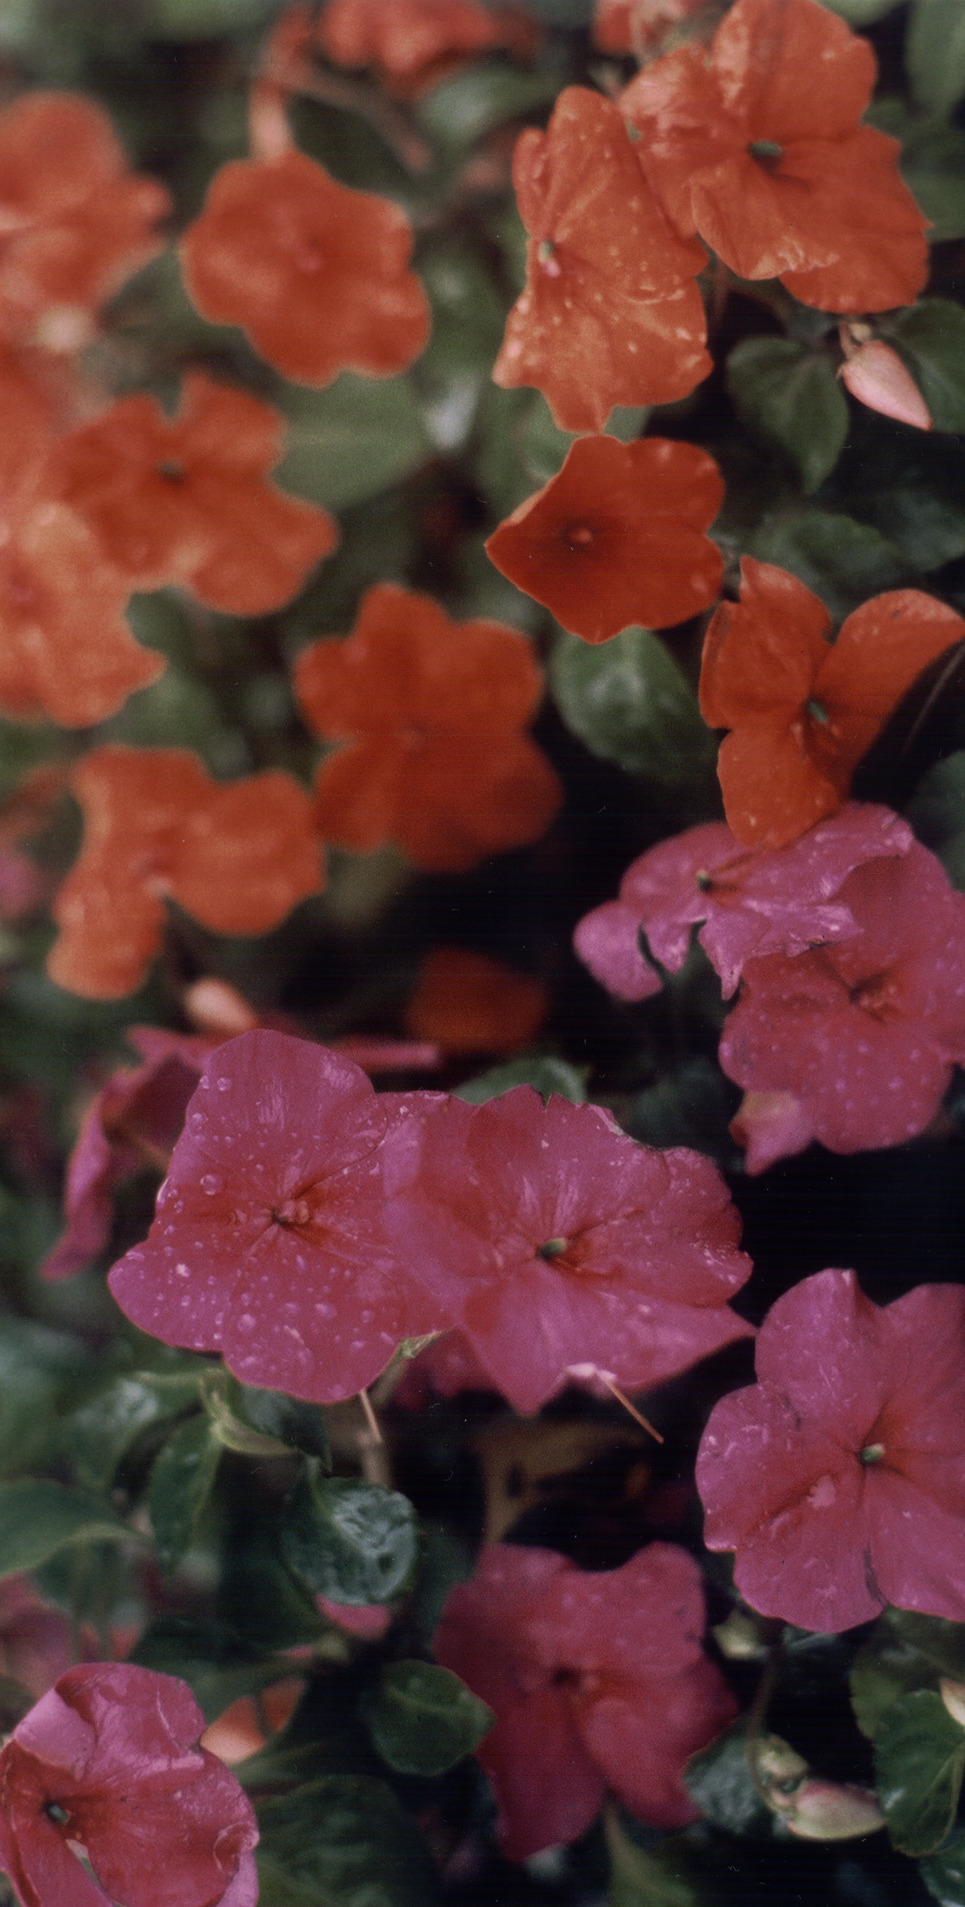 Flowers in the rain show